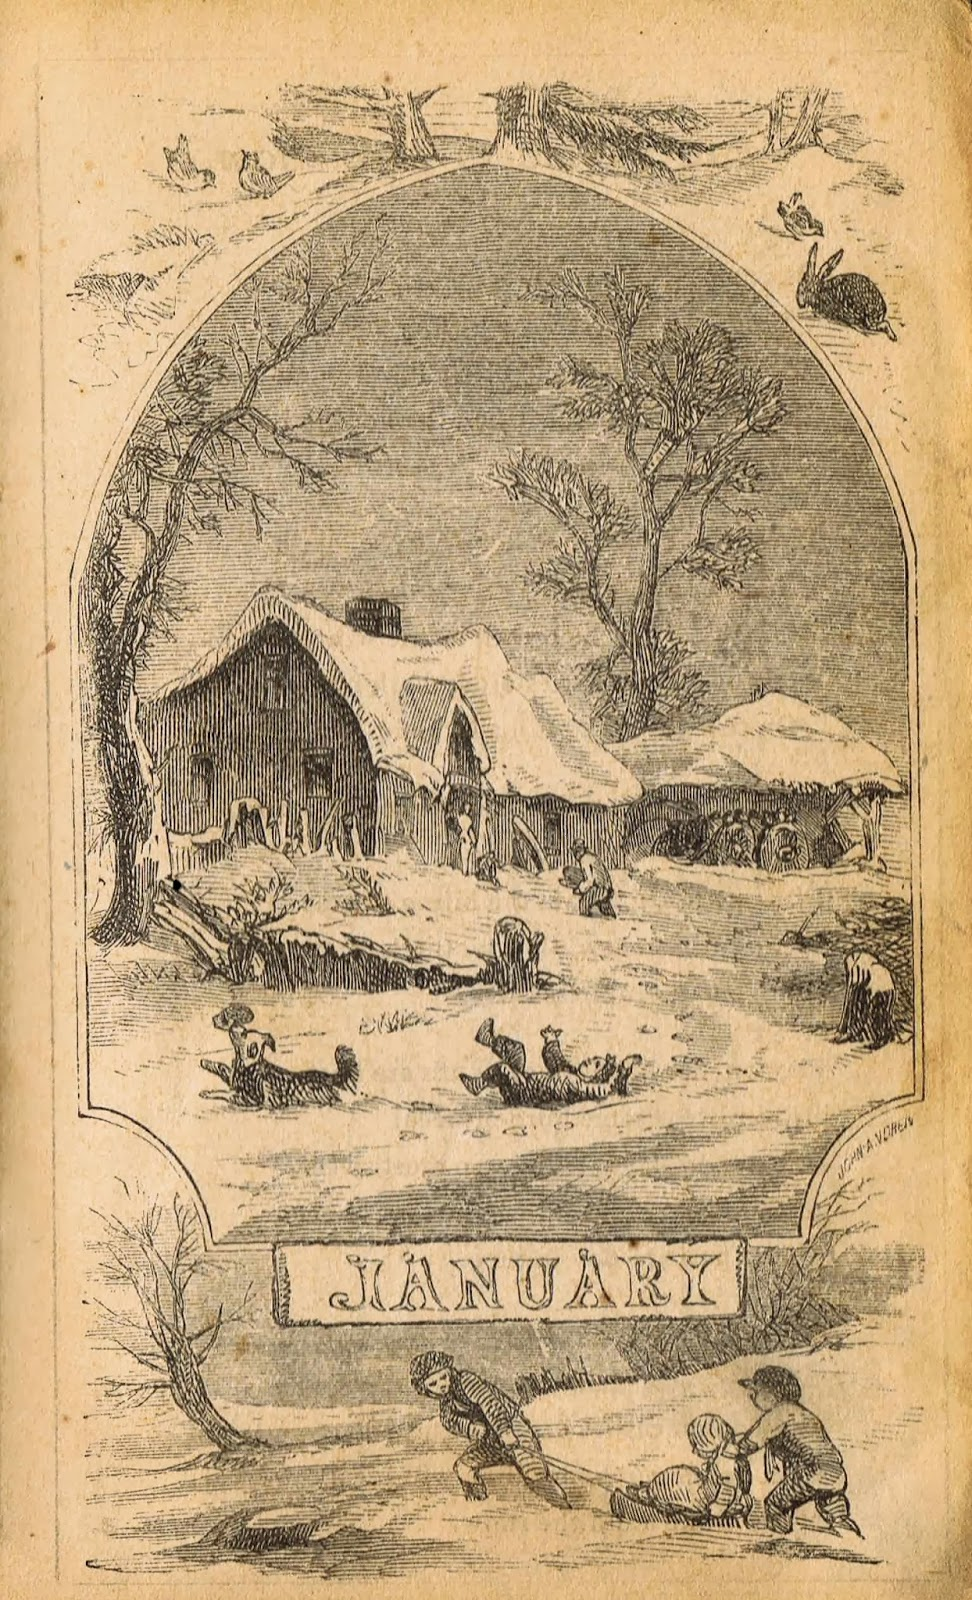 Antique Winter Calender Months Winter Sledding Illustrations from 1800's Lady's Almanac via Knick of Time